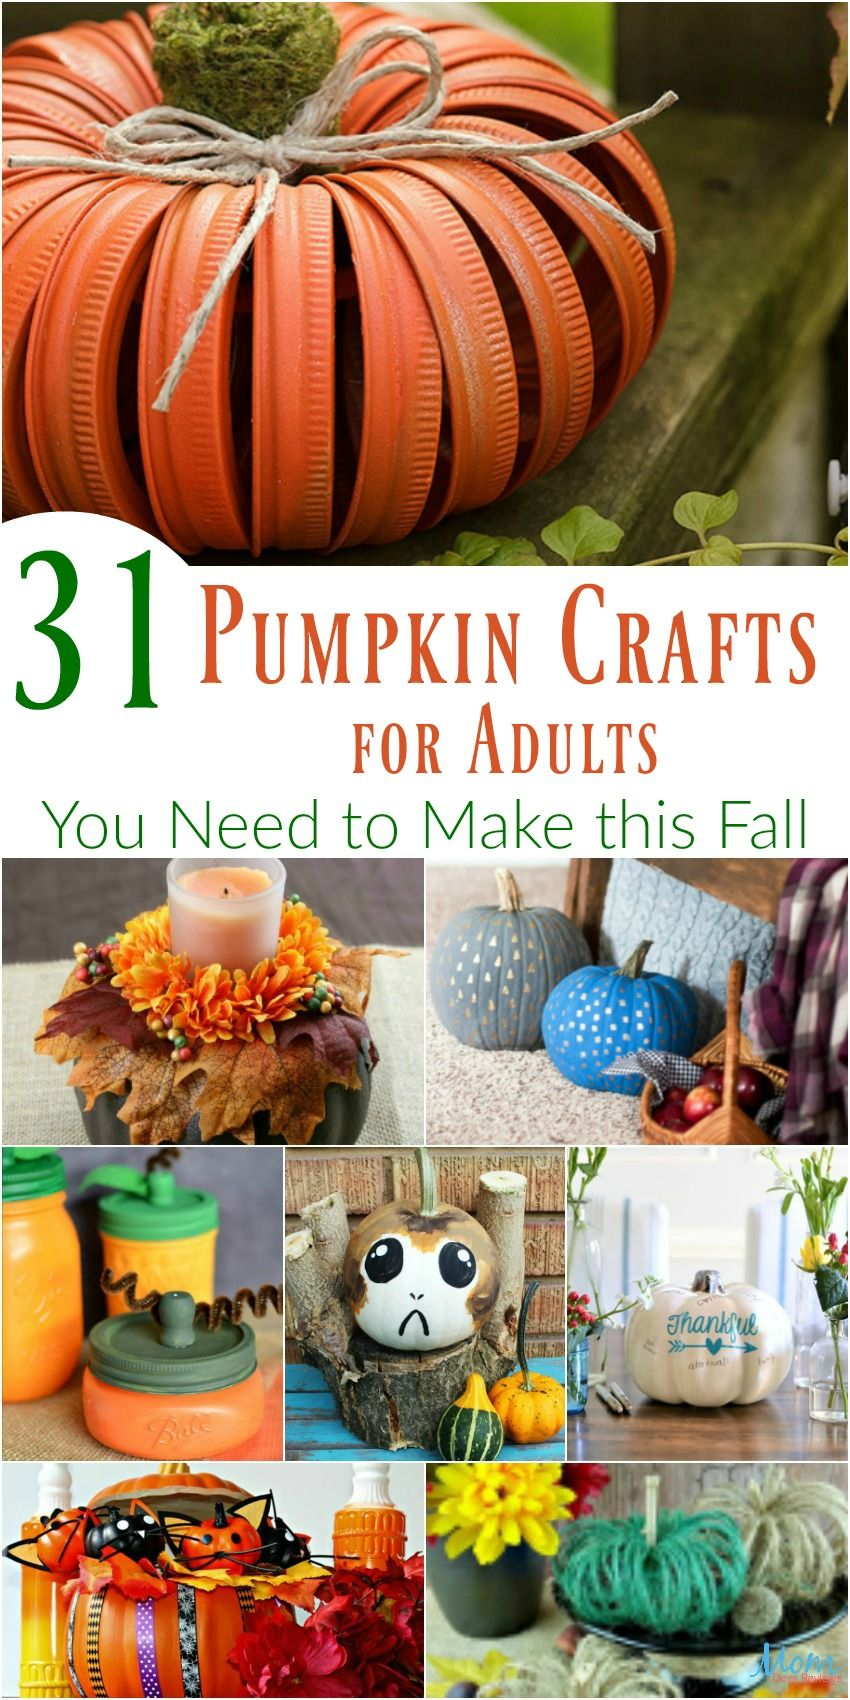 33+ Homemade craft ideas for adults info